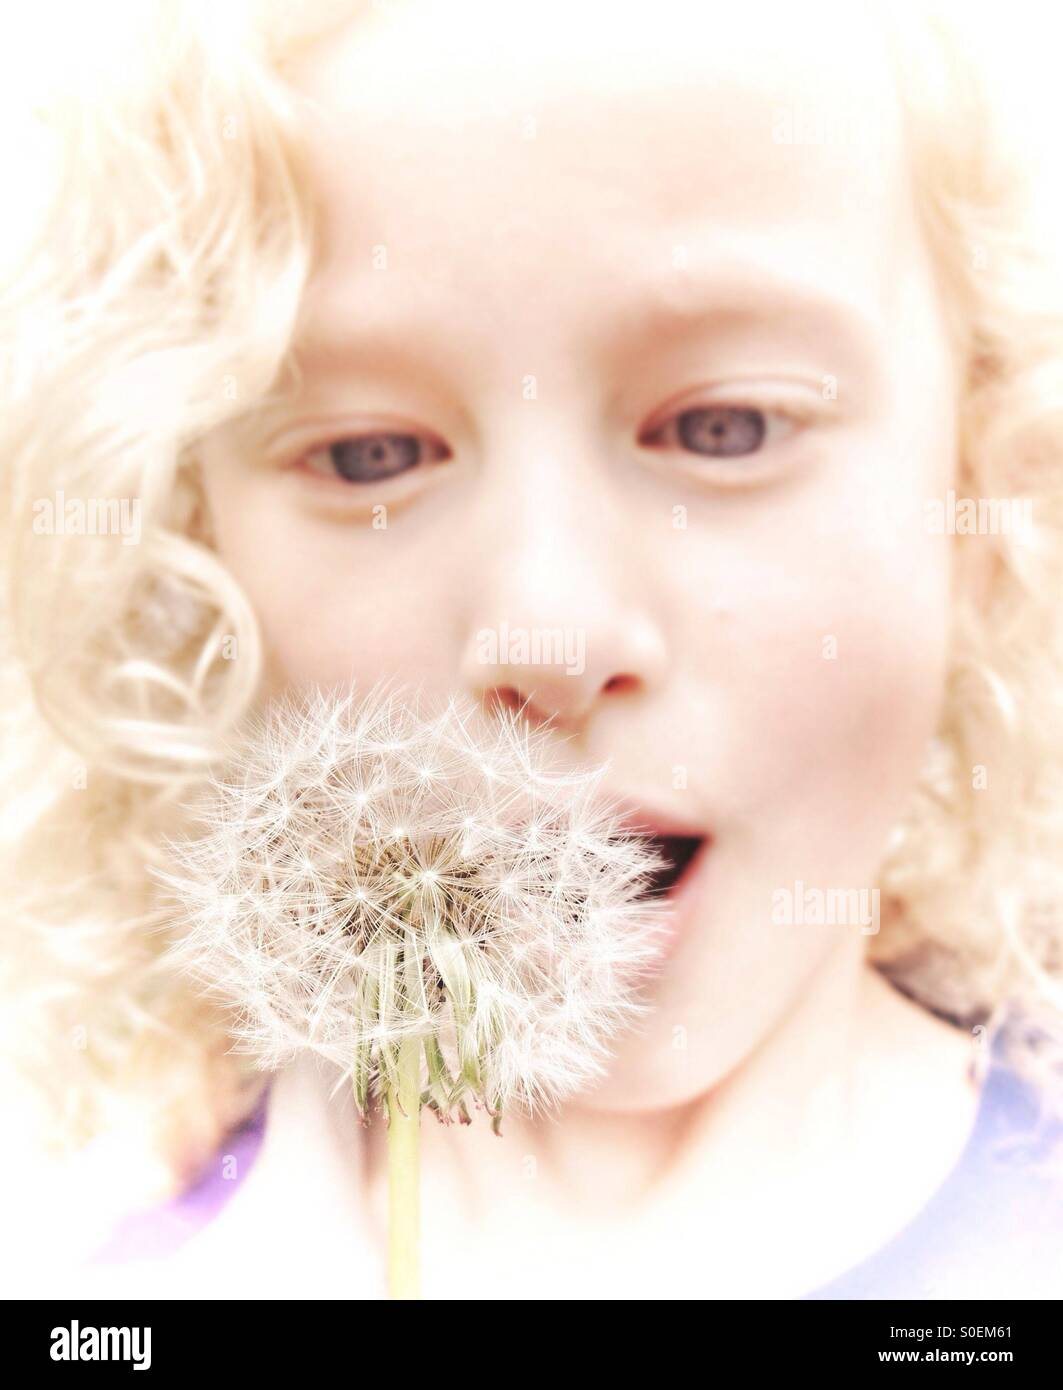 Young Girl blowing dandelion seed head Photo Stock